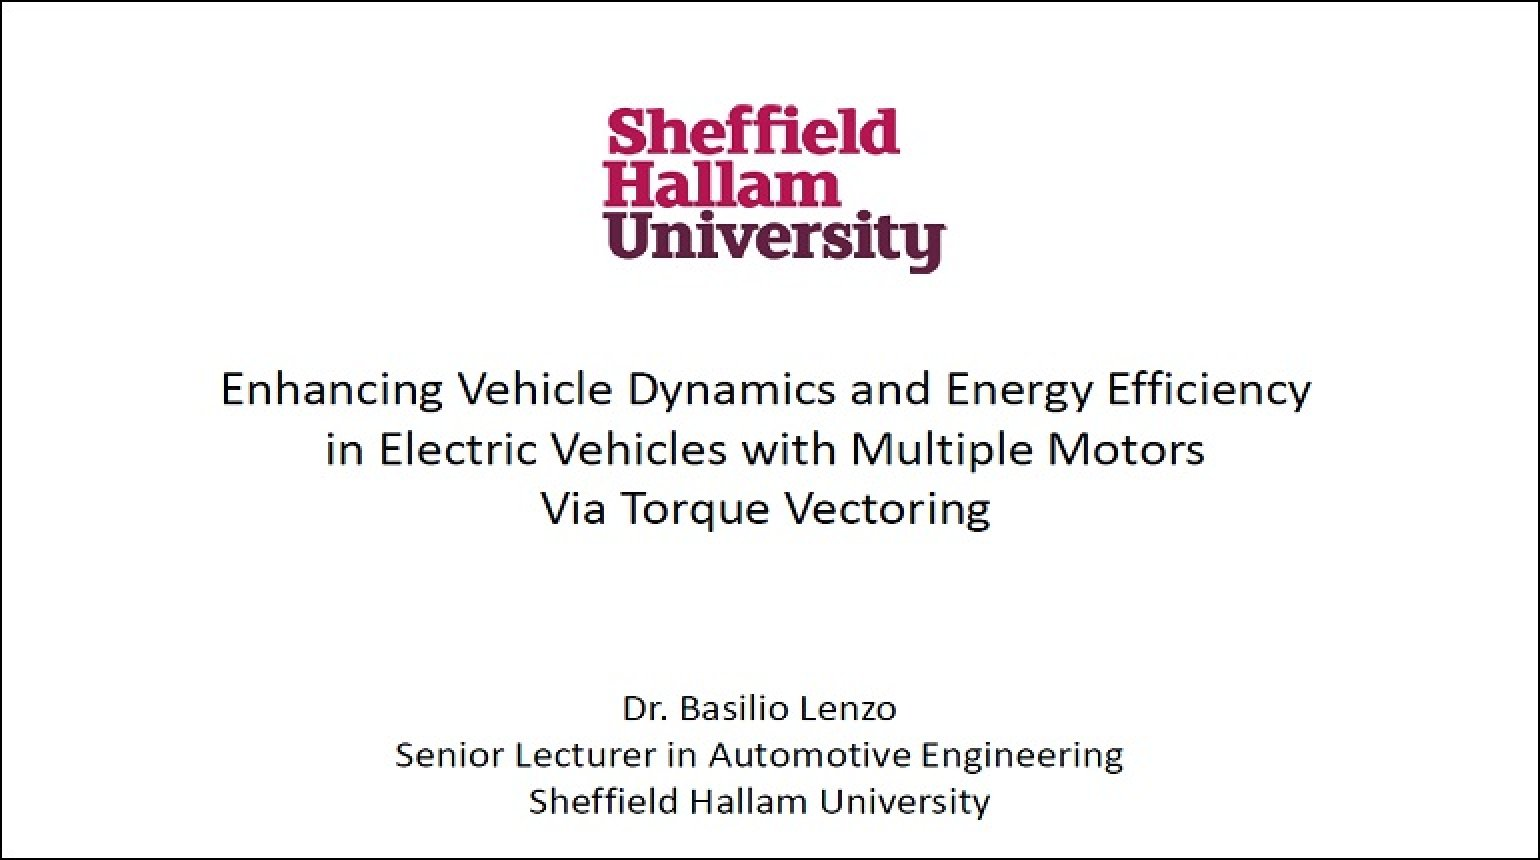 Video - Enhancing Vehicle Dynamics and Energy Efficiency in Electric Vehicles with Multiple Motors Via Torque Vectoring